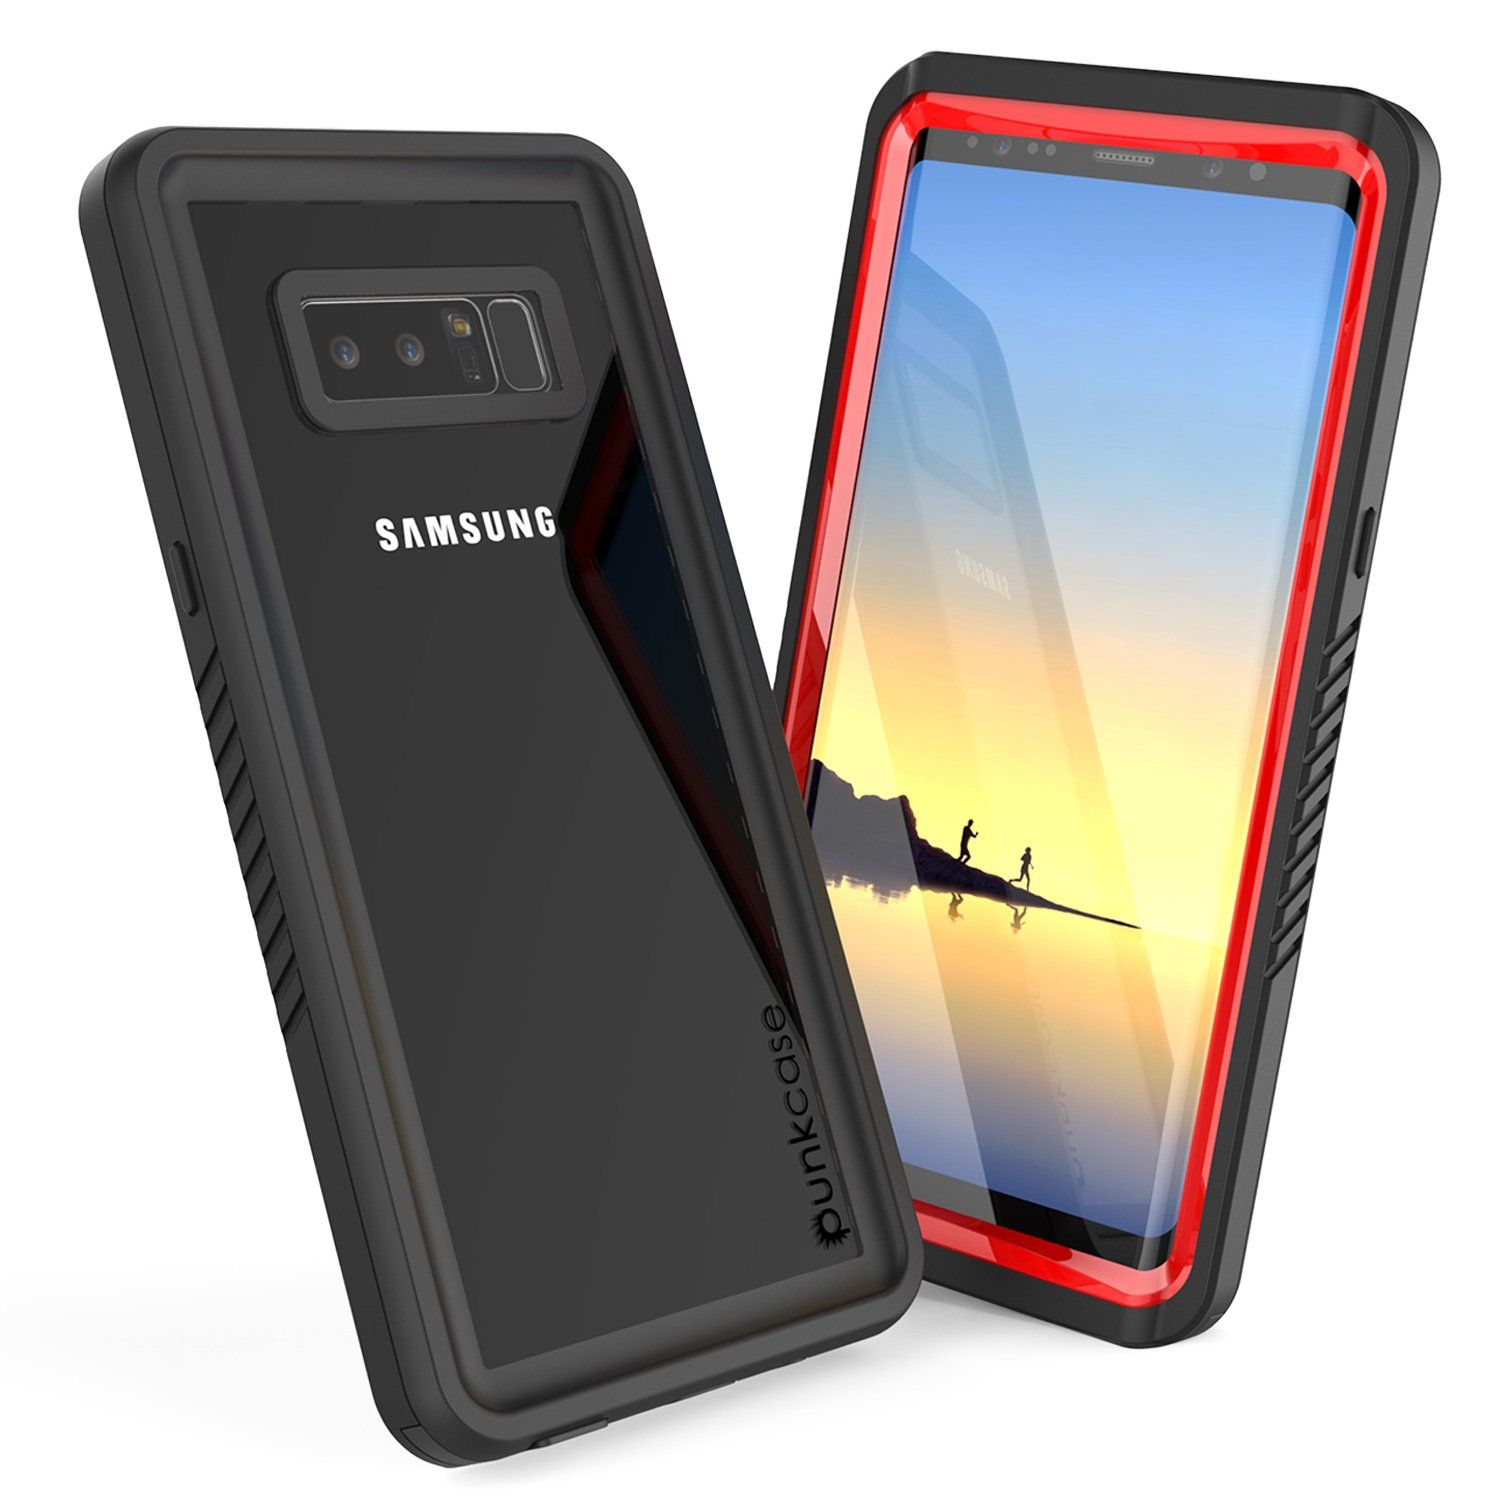 Galaxy Note 8 Anti Shock Screen Protector Slim Fit Case Red With Images Galaxy Galaxy Note 8 Galaxy Note